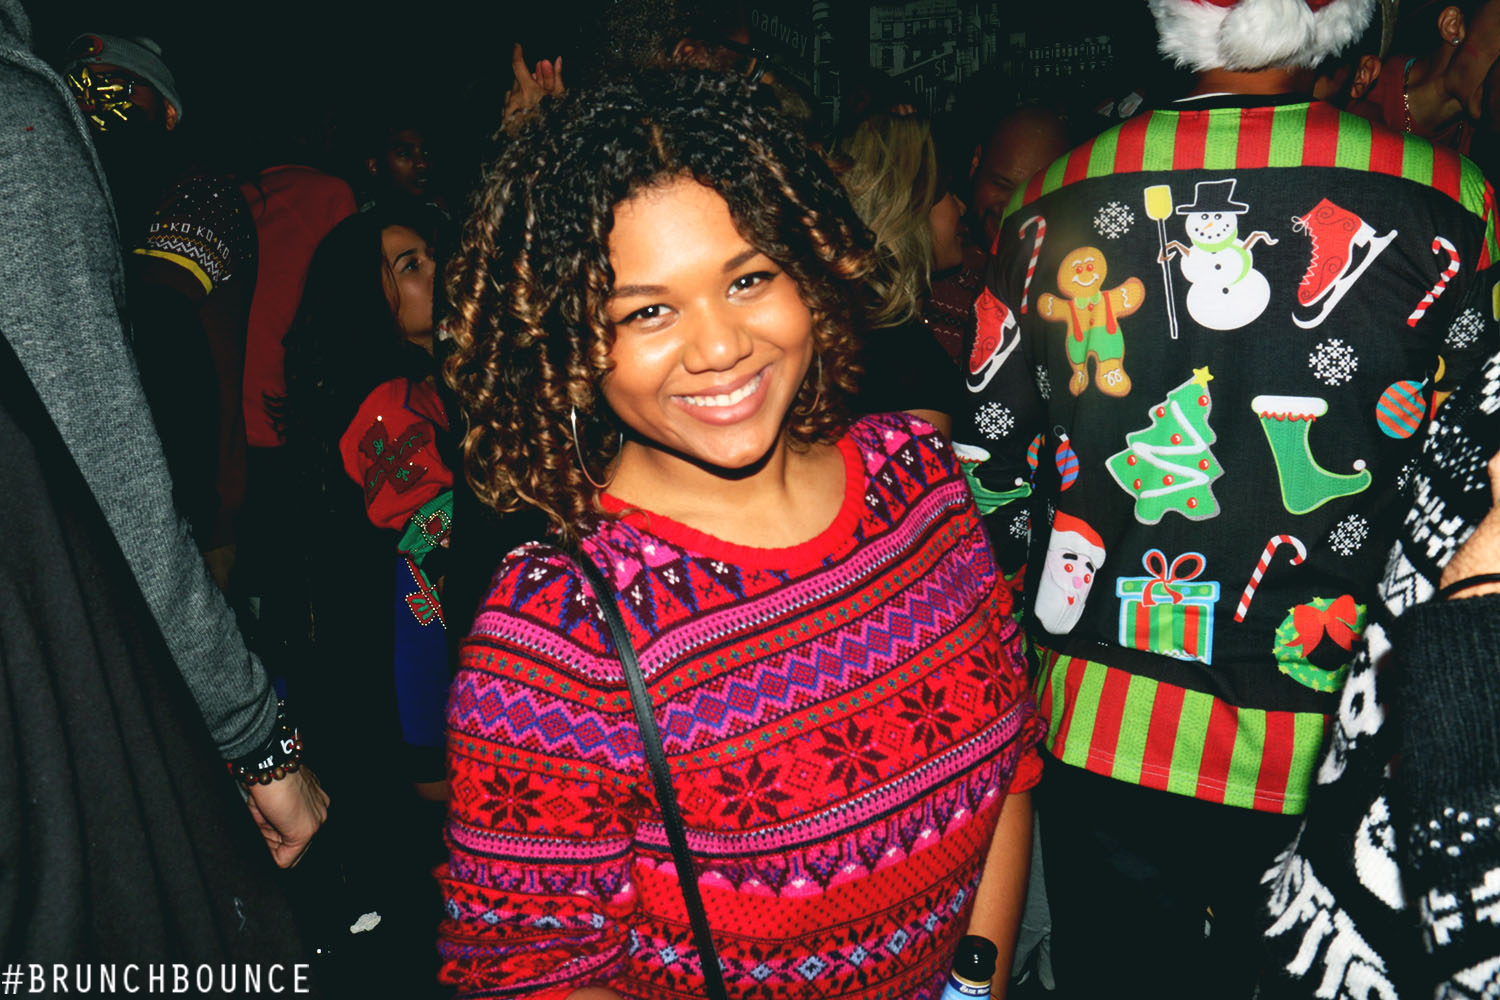 brunchbounce-ugly-christmas-sweater-party-122014_15460413394_o.jpg